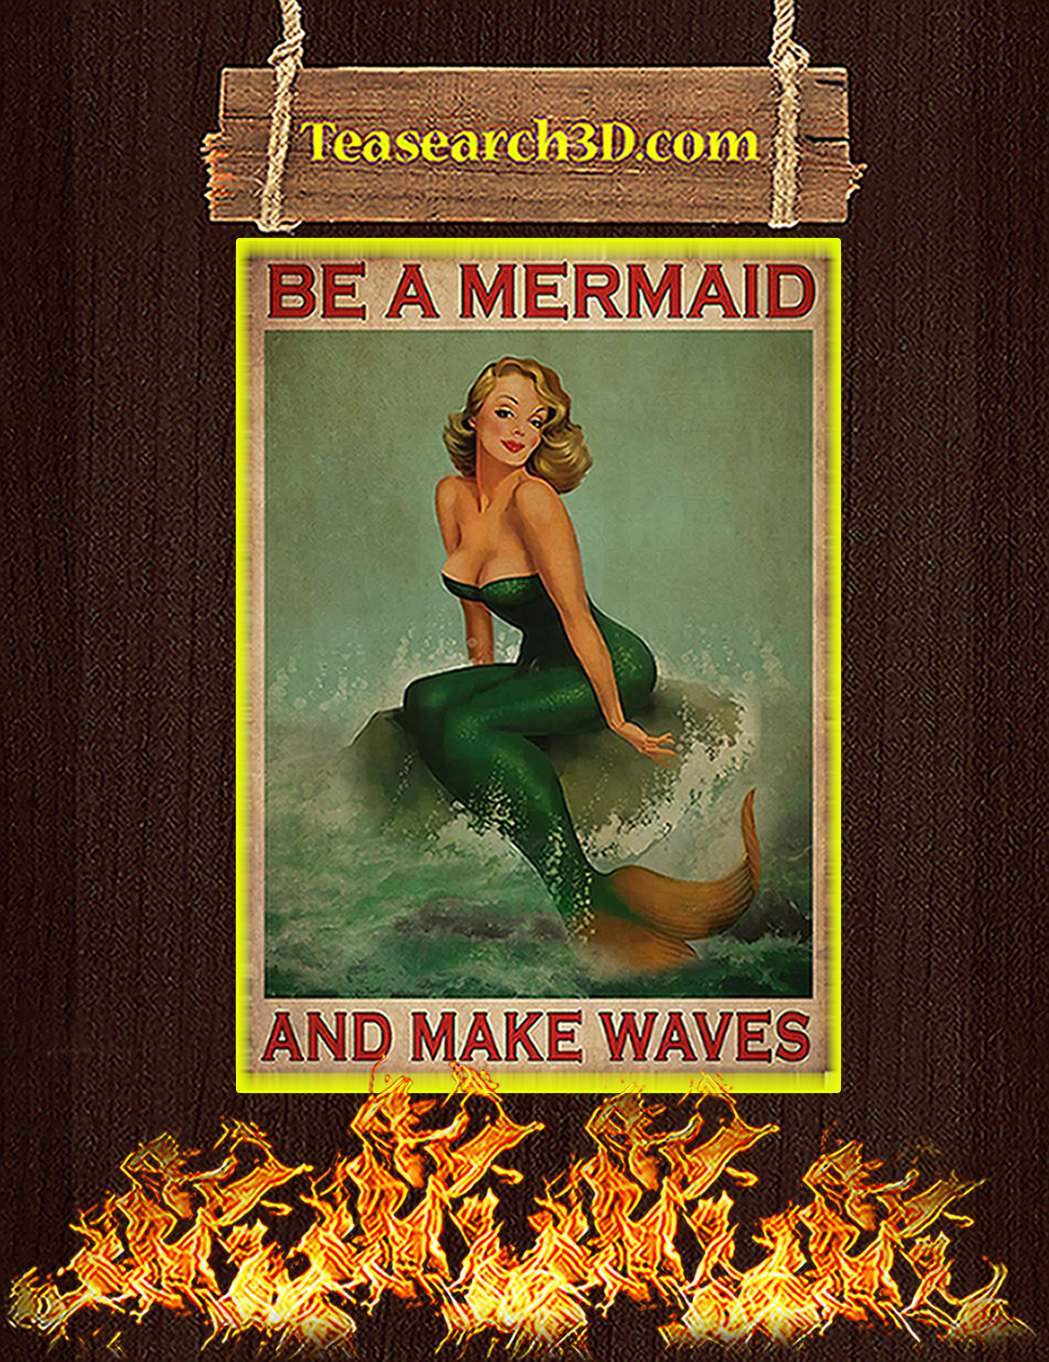 Be a mermaid and make waves poster A1